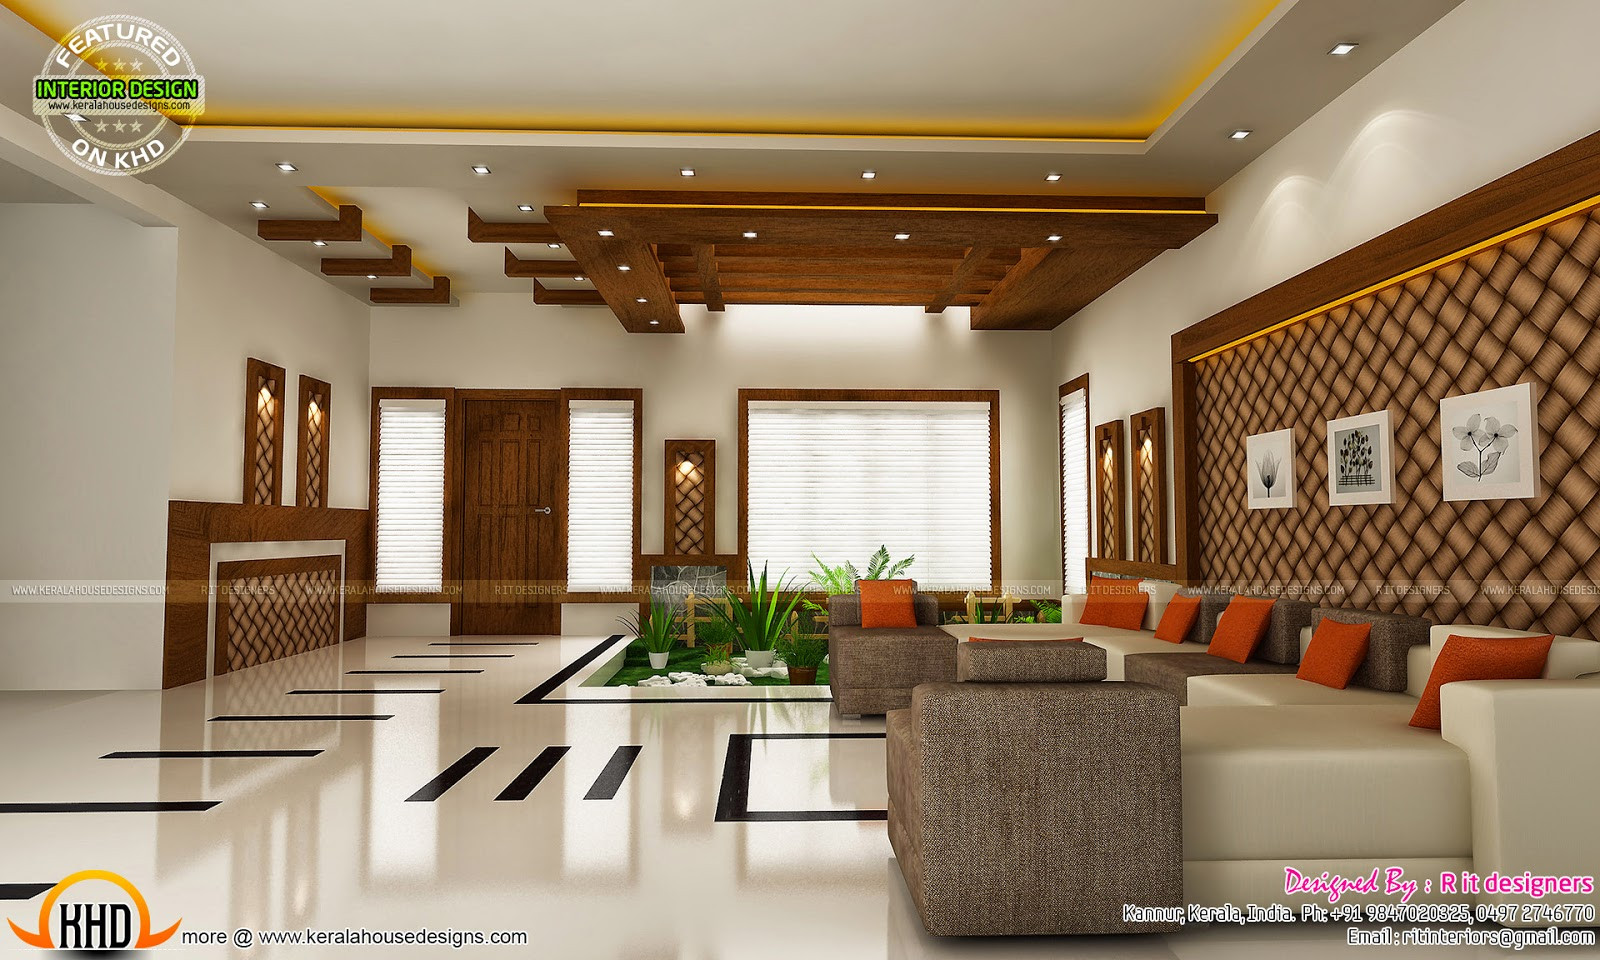 Kerala House Interiors Interior Designs